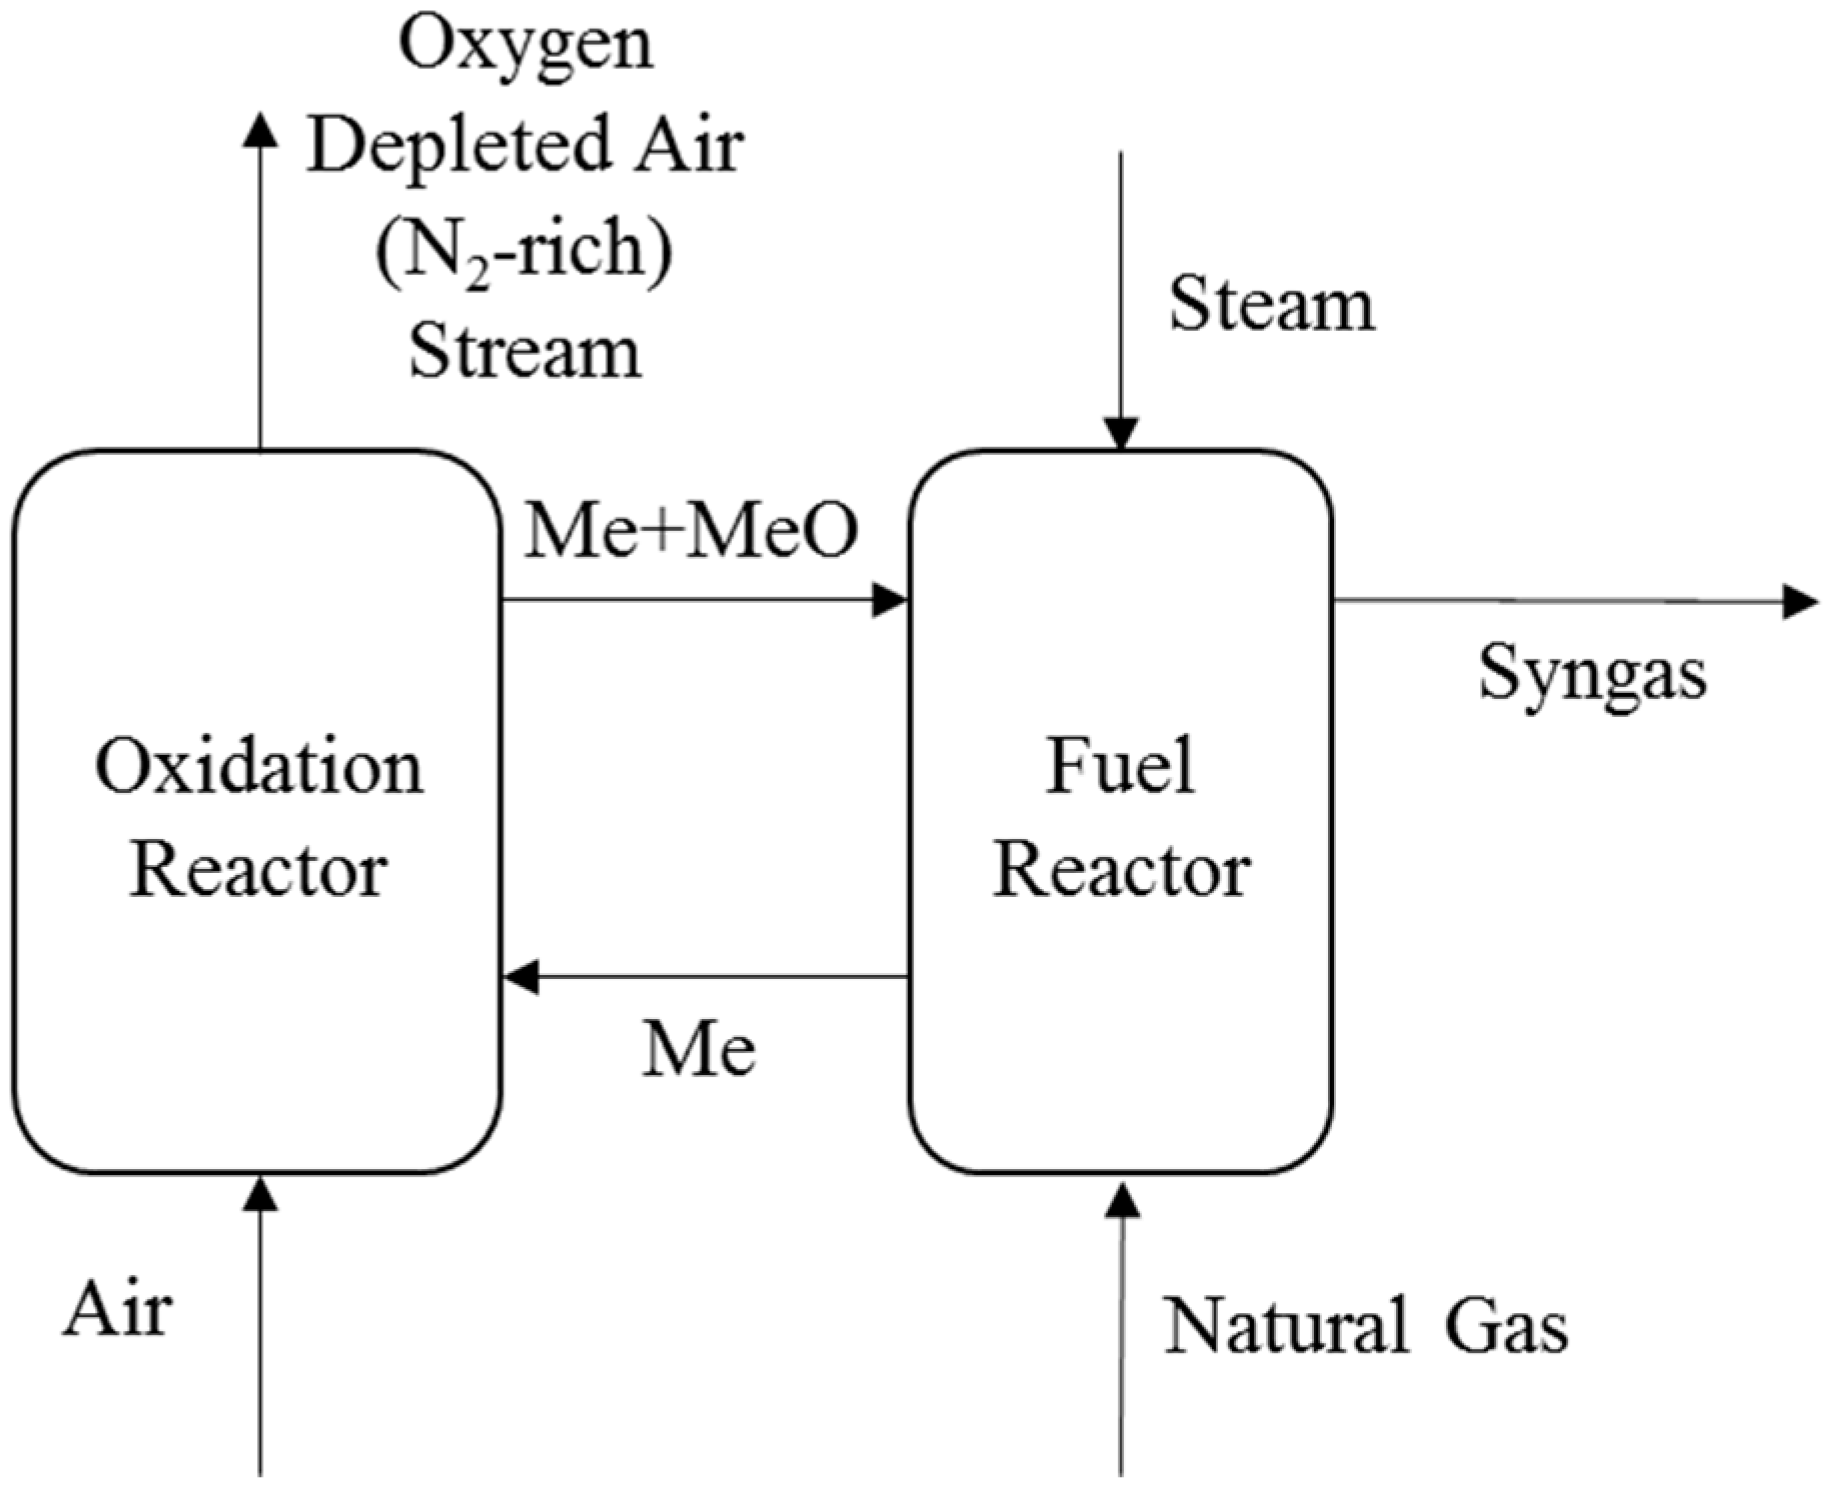 Energies Free Full Text Analysis Of Combined Cycle Power Plants Natural Gas Plant Diagram No